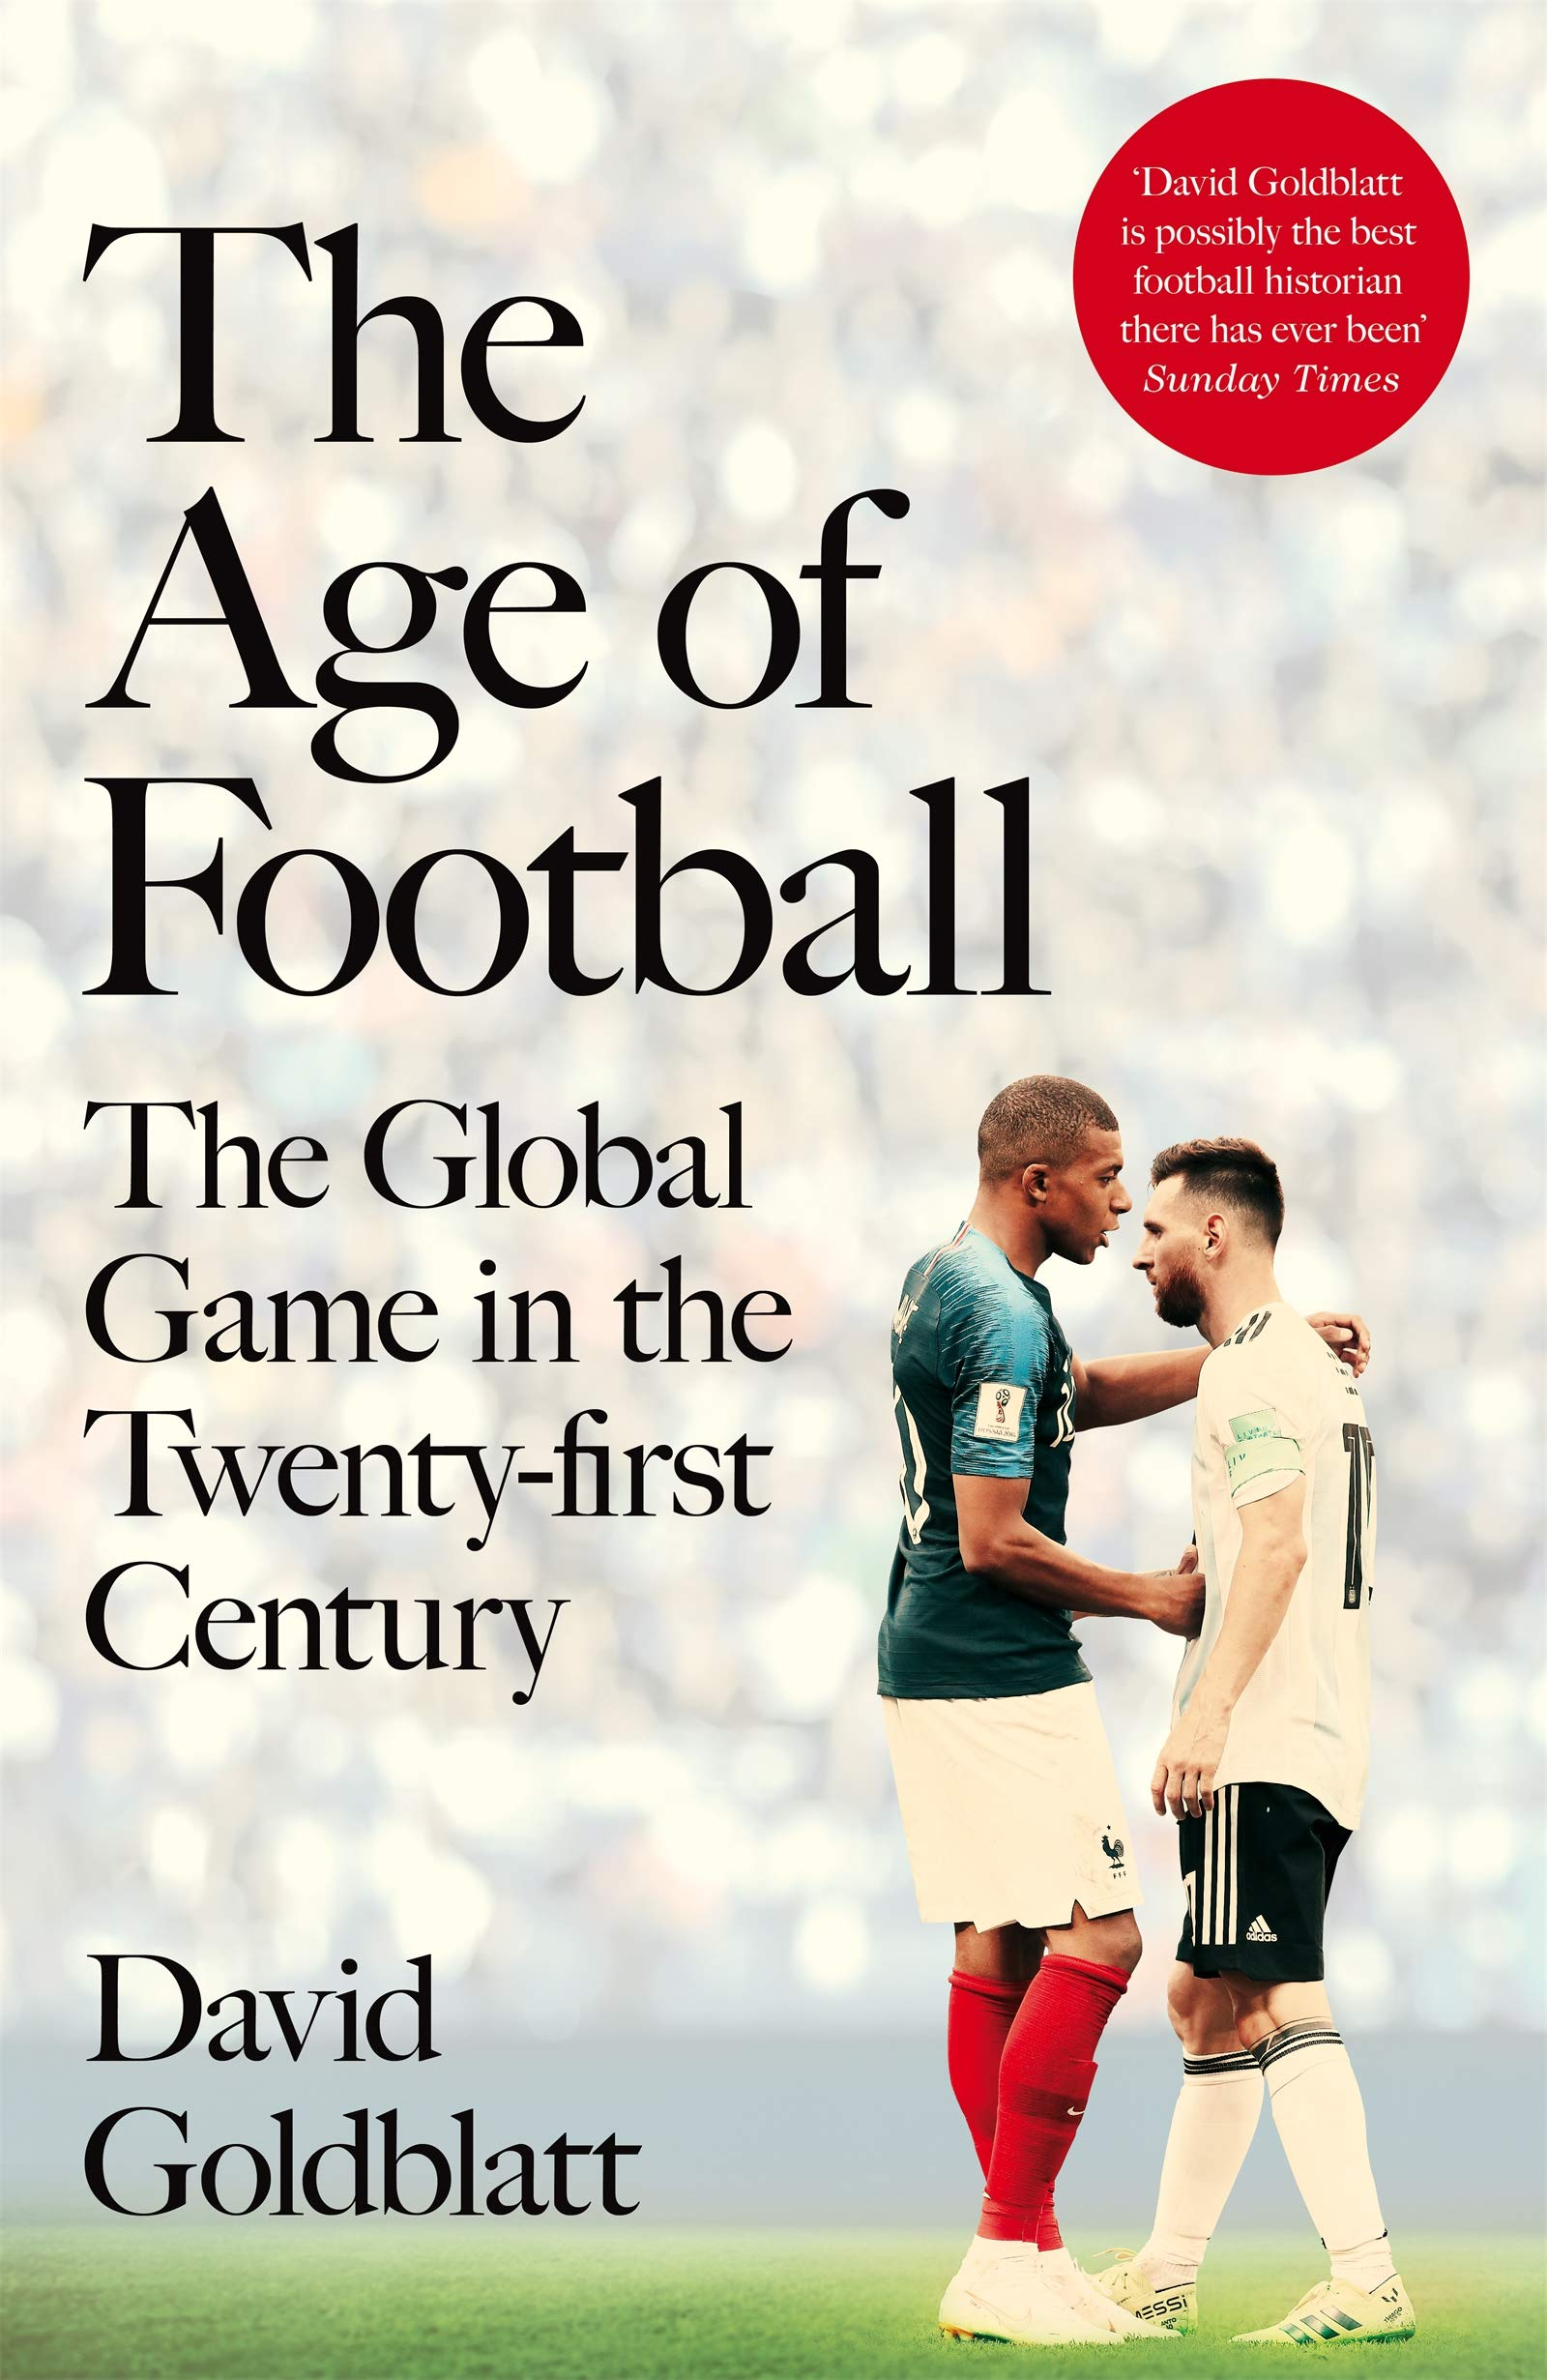 The Age of Football: The Global Game in the Twenty-first Century by Macmillan